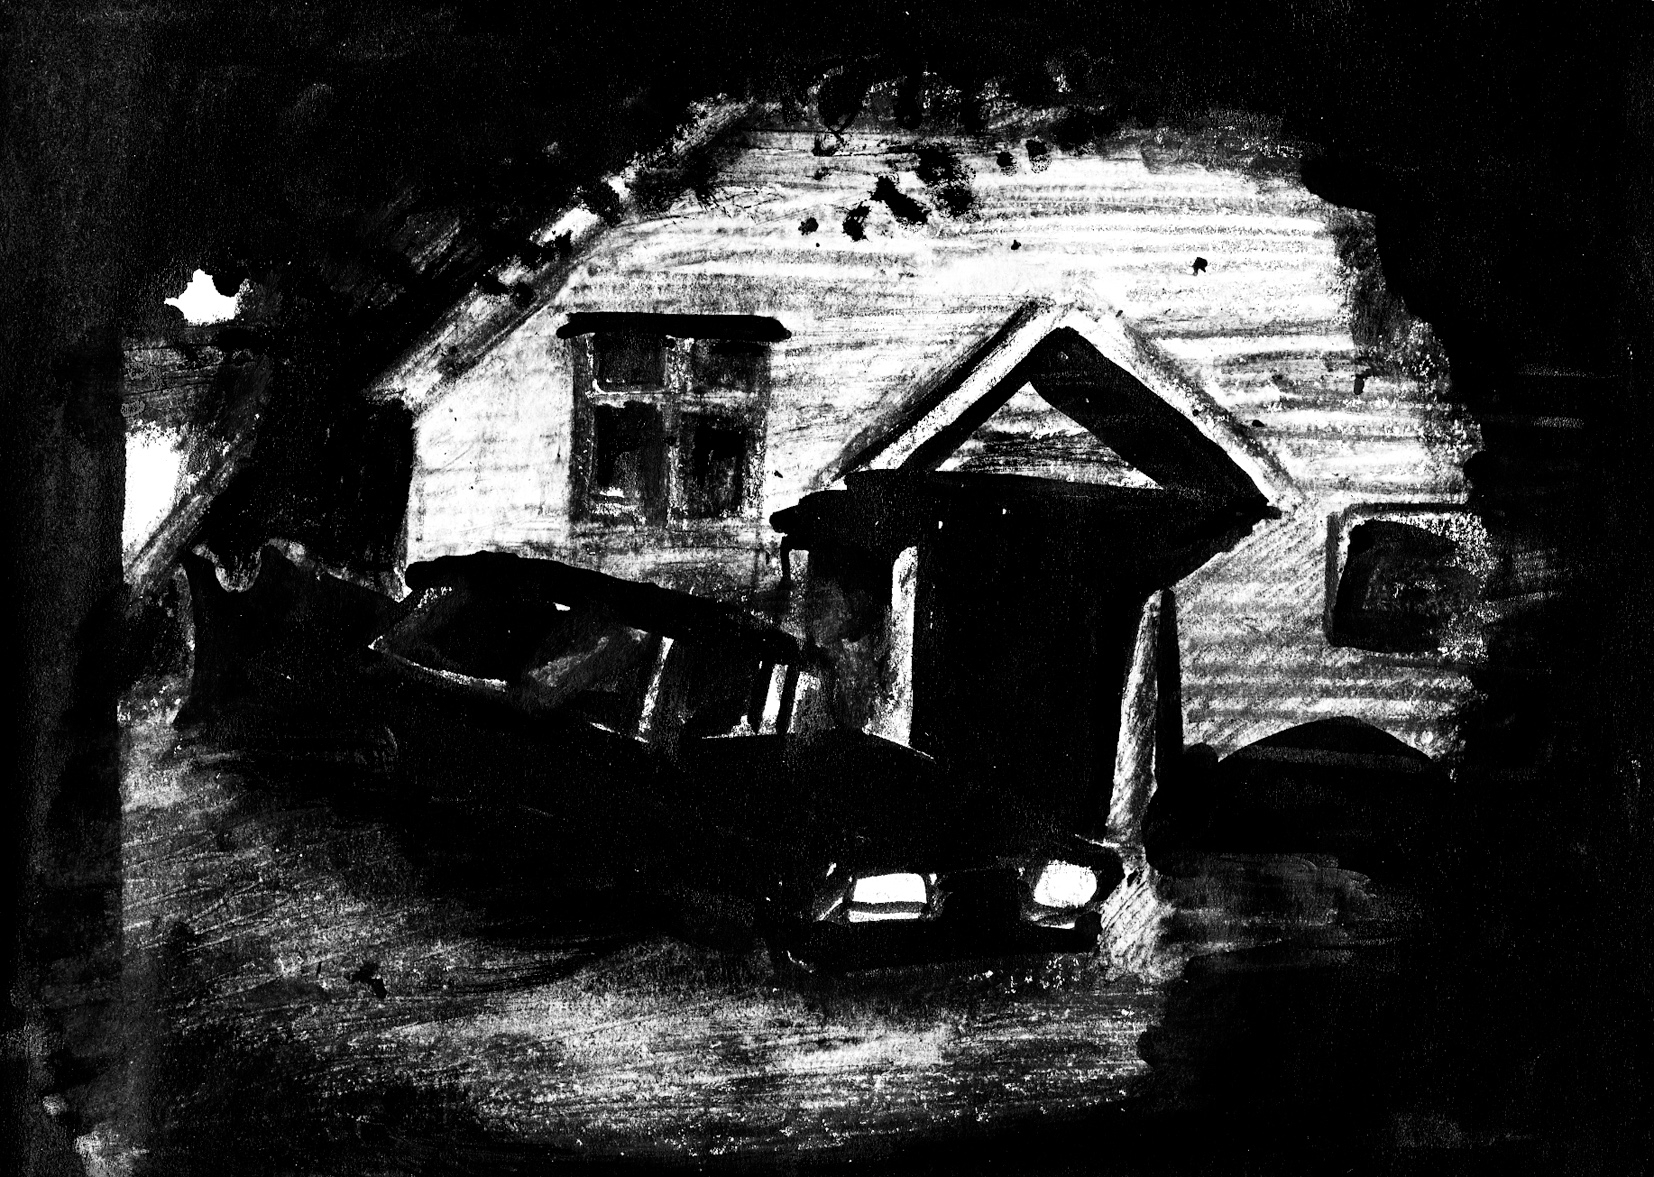 Horror Hotel Noir Car Moody